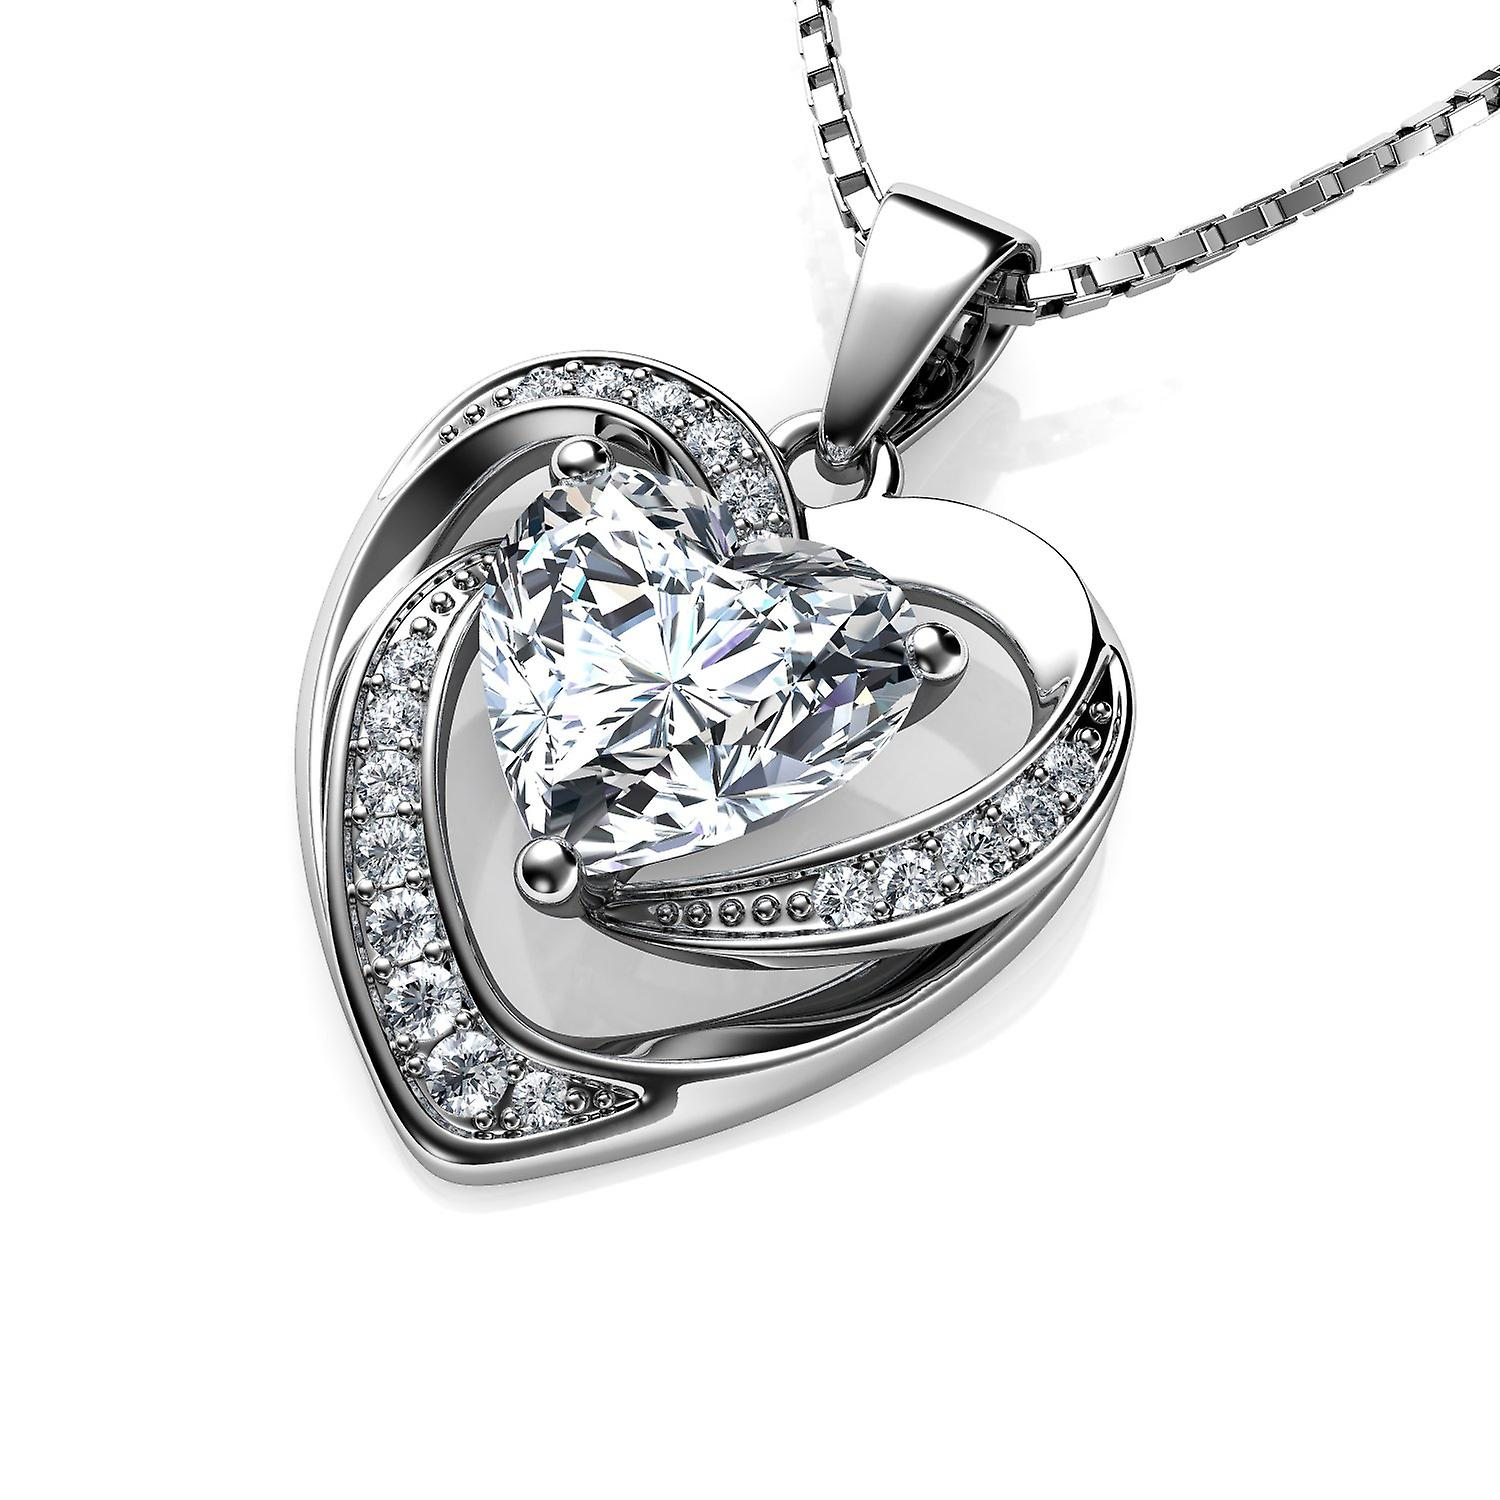 Dephini white heart necklace - 925 sterling silver pendant cz crystal